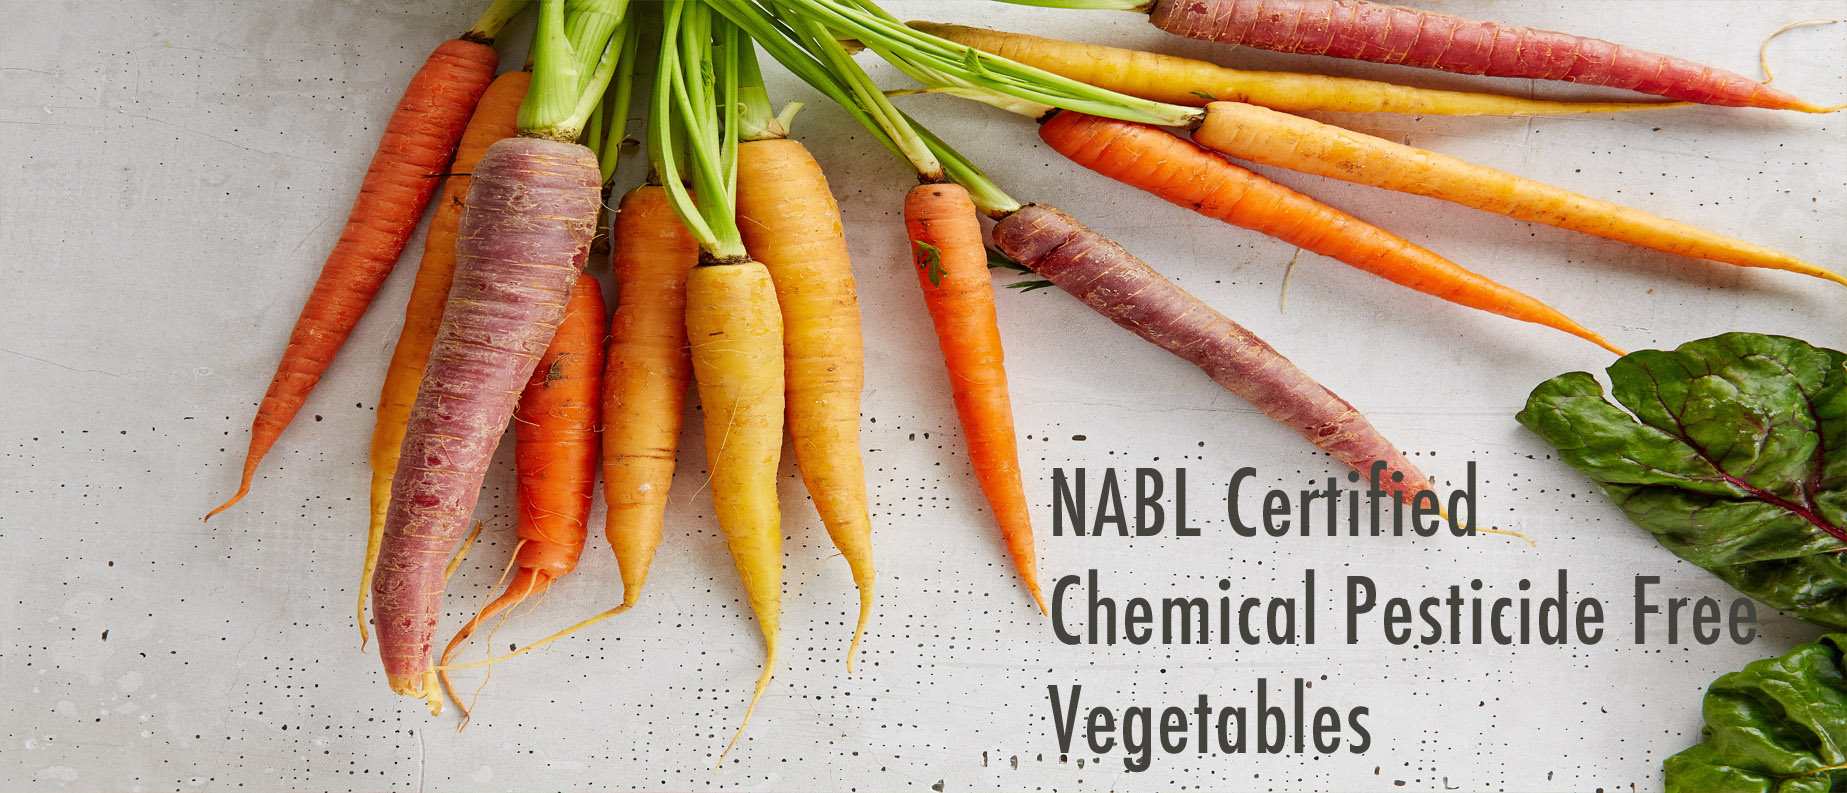 NABL Certified vegetables